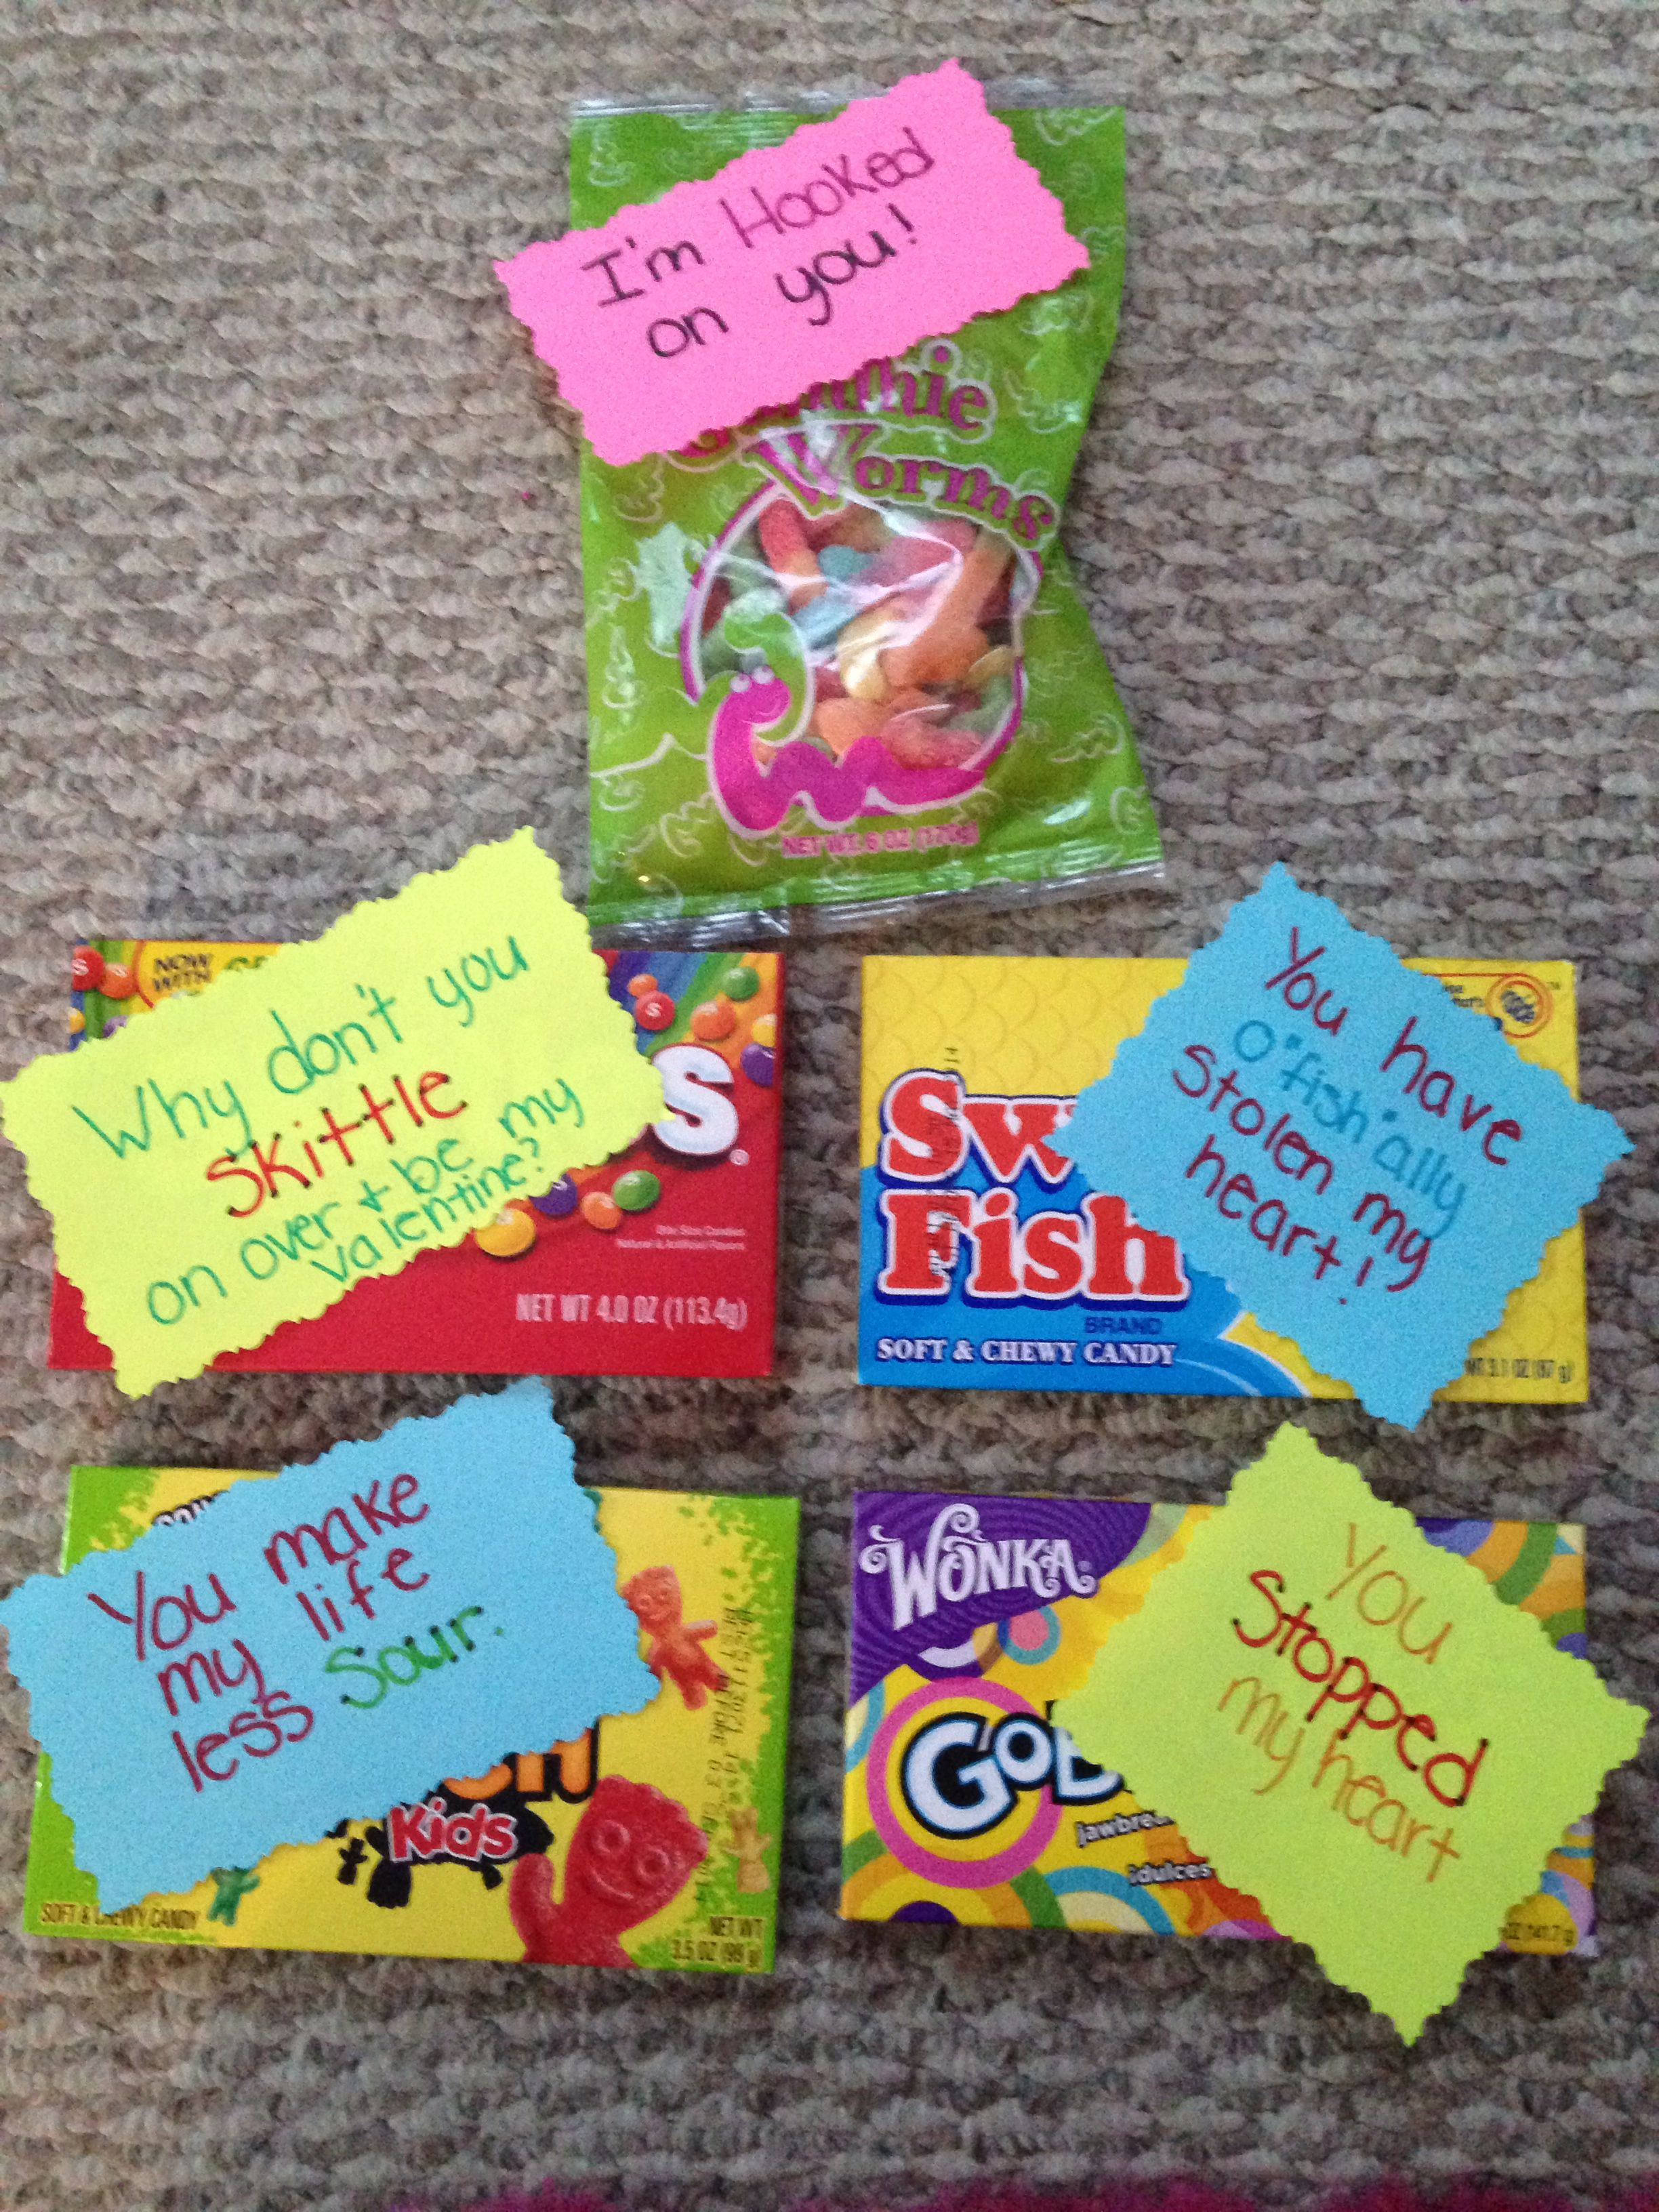 Sweet valentine candy sayings. valentines swedishfish